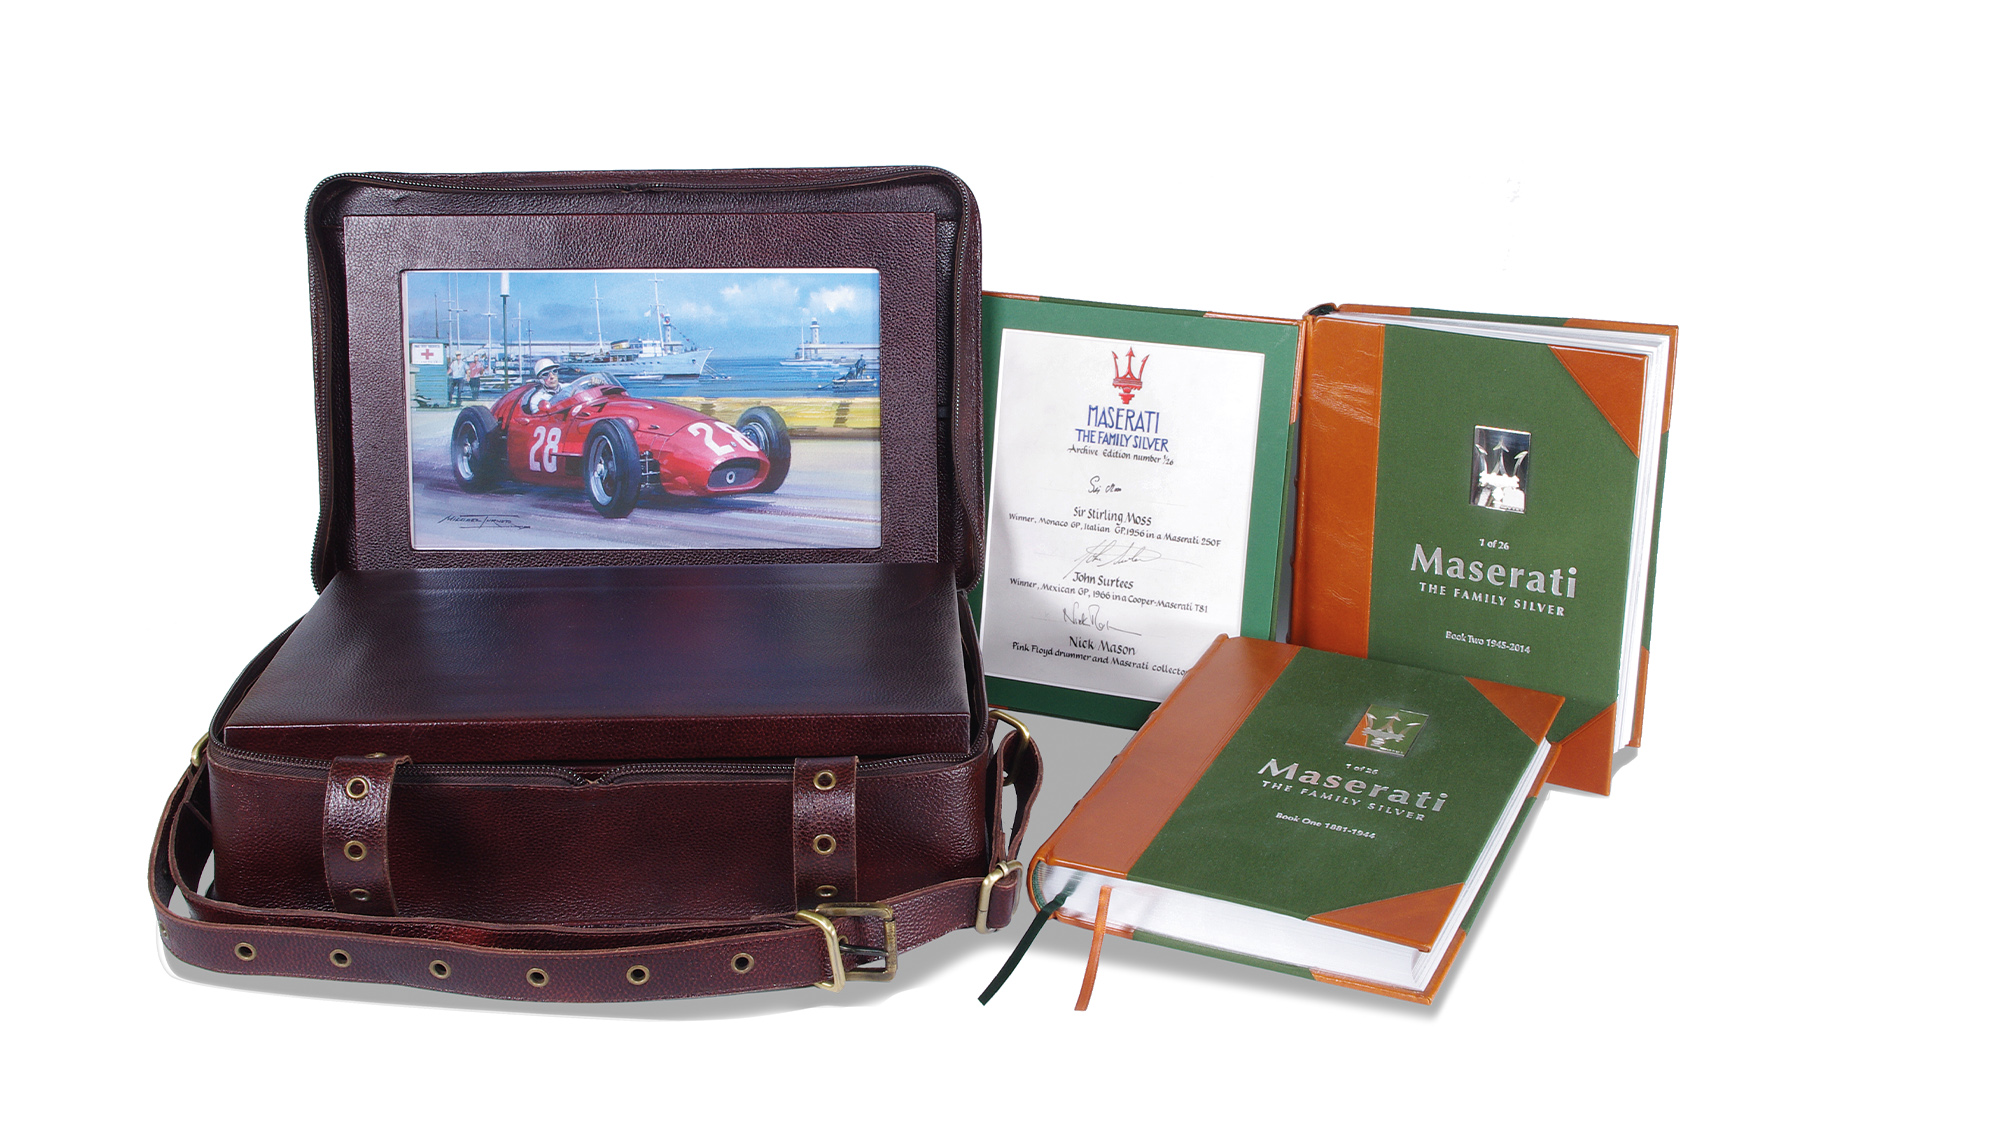 Maserati The Family Silver Special Edition book competition prize